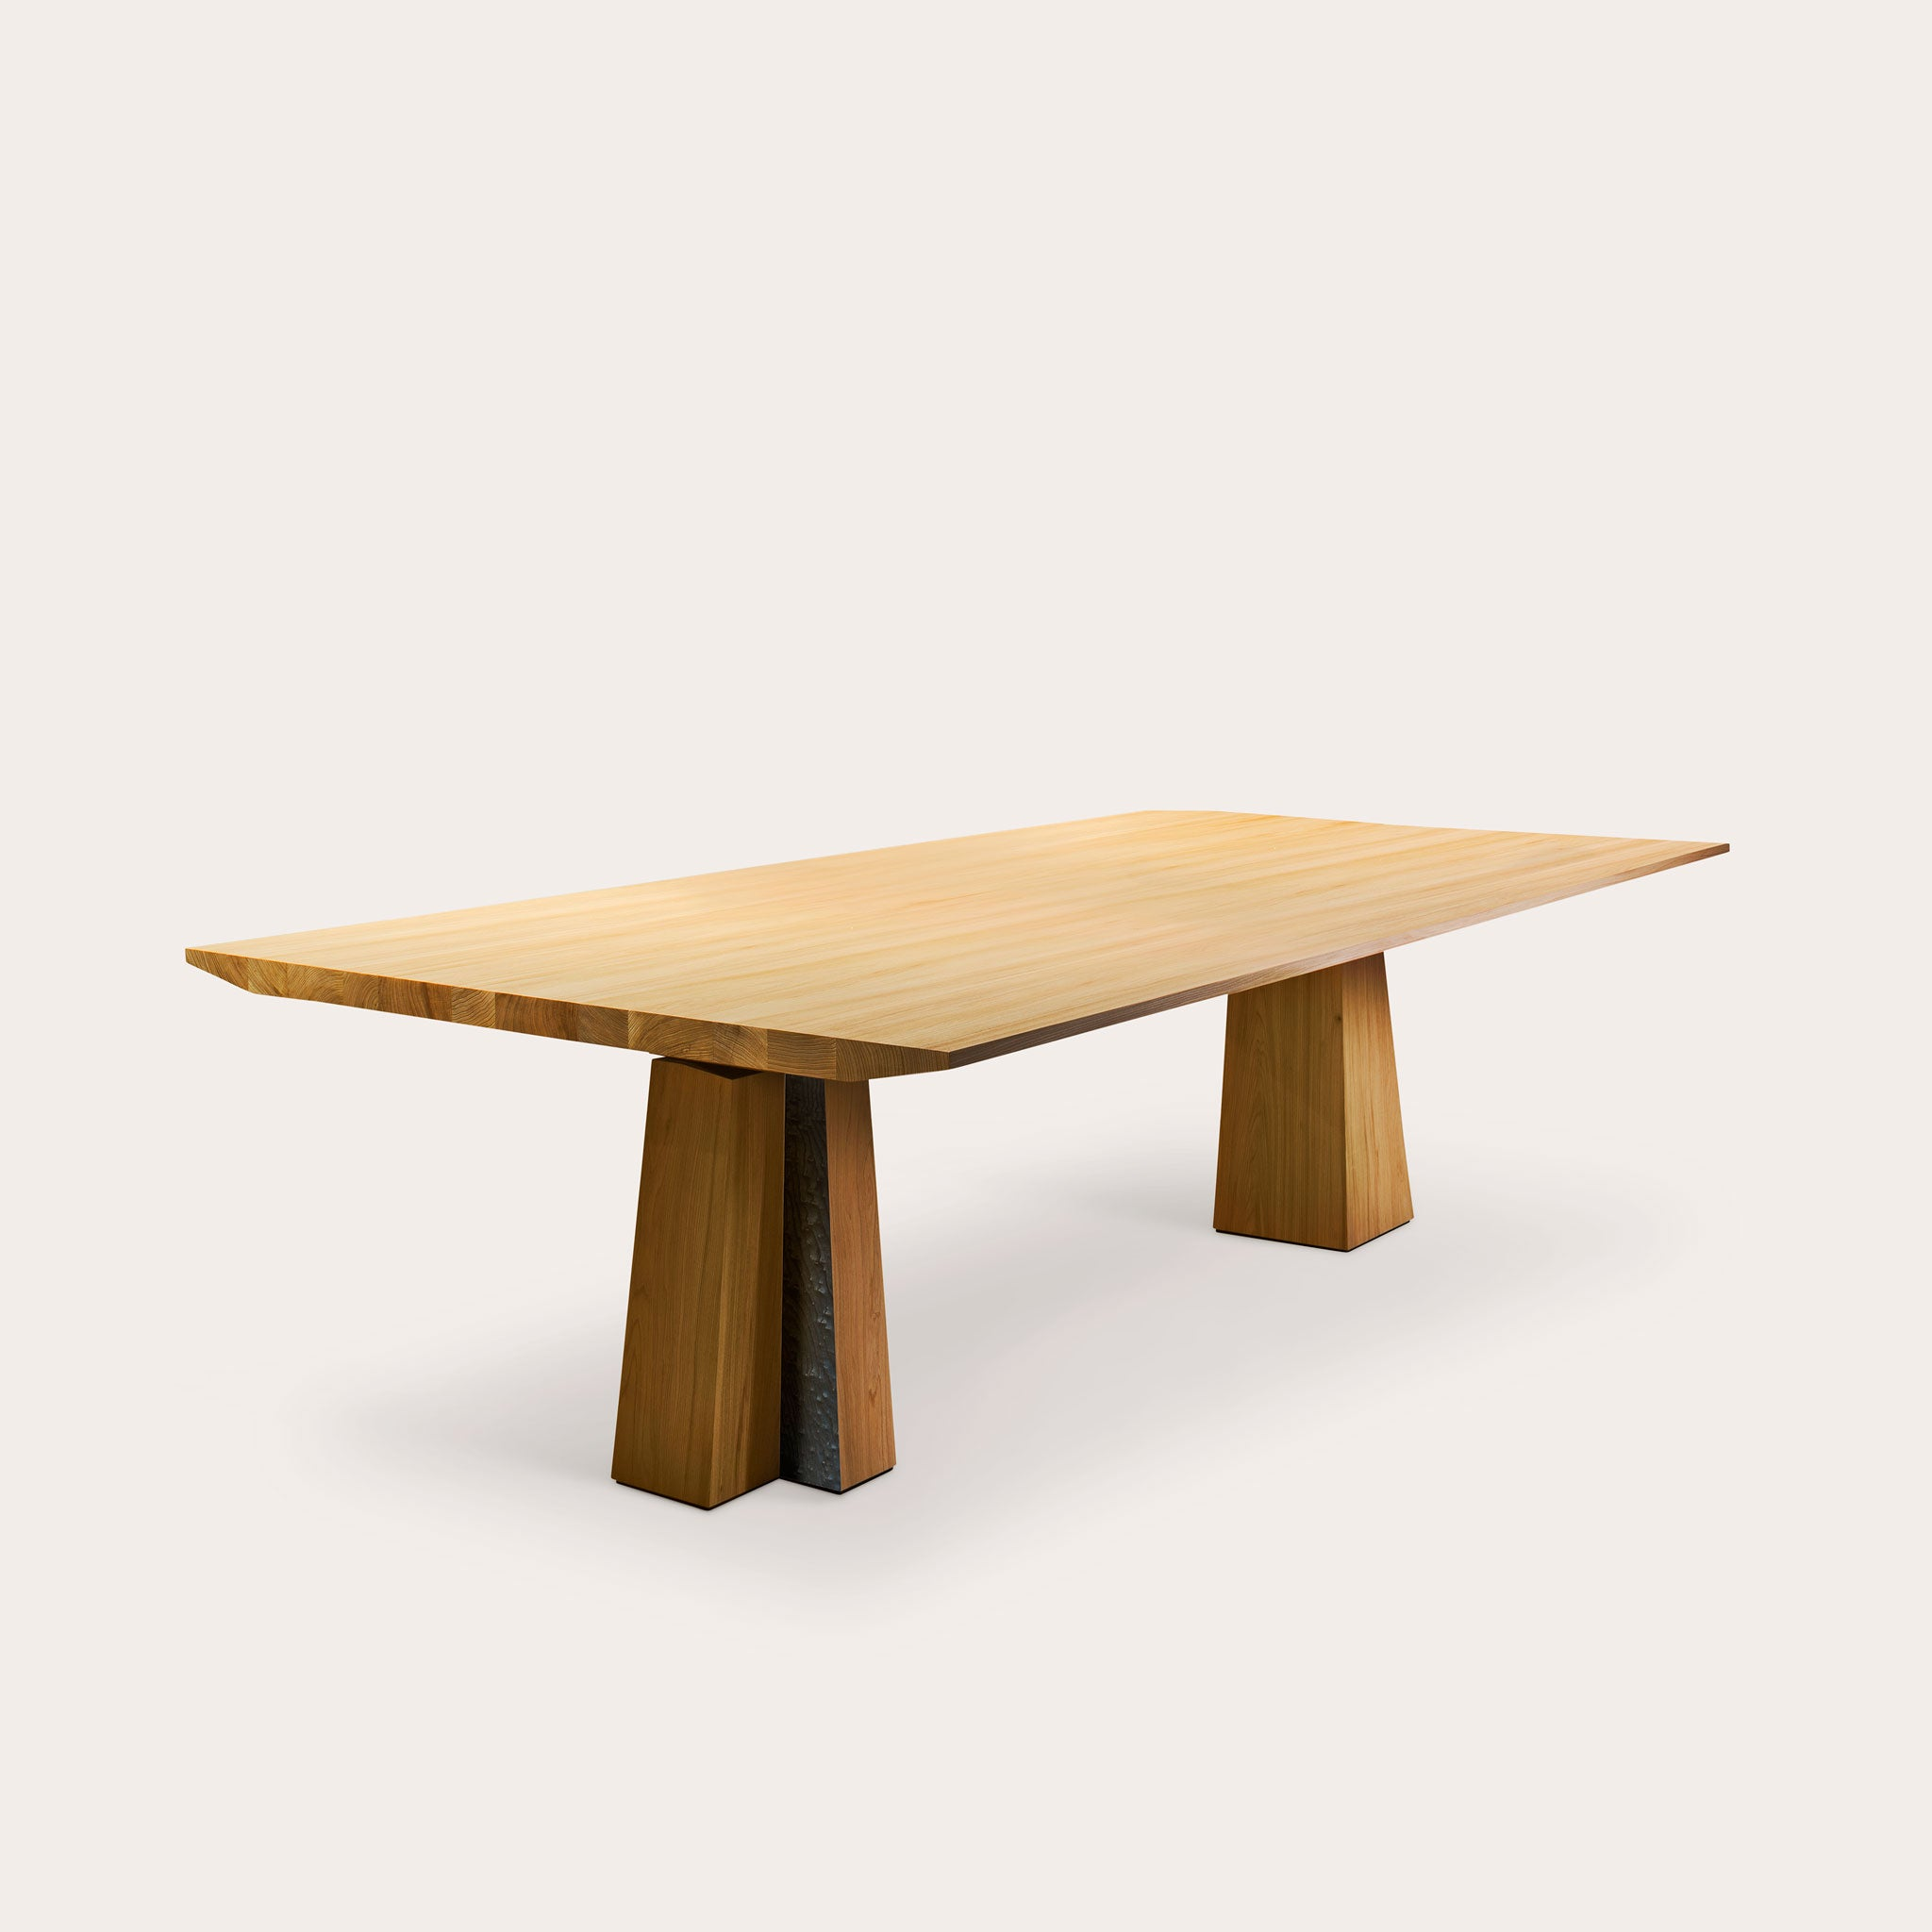 ETRETAT Dining Table Tables Bruno Moinard Designer Furniture Sku: 773-230-10079